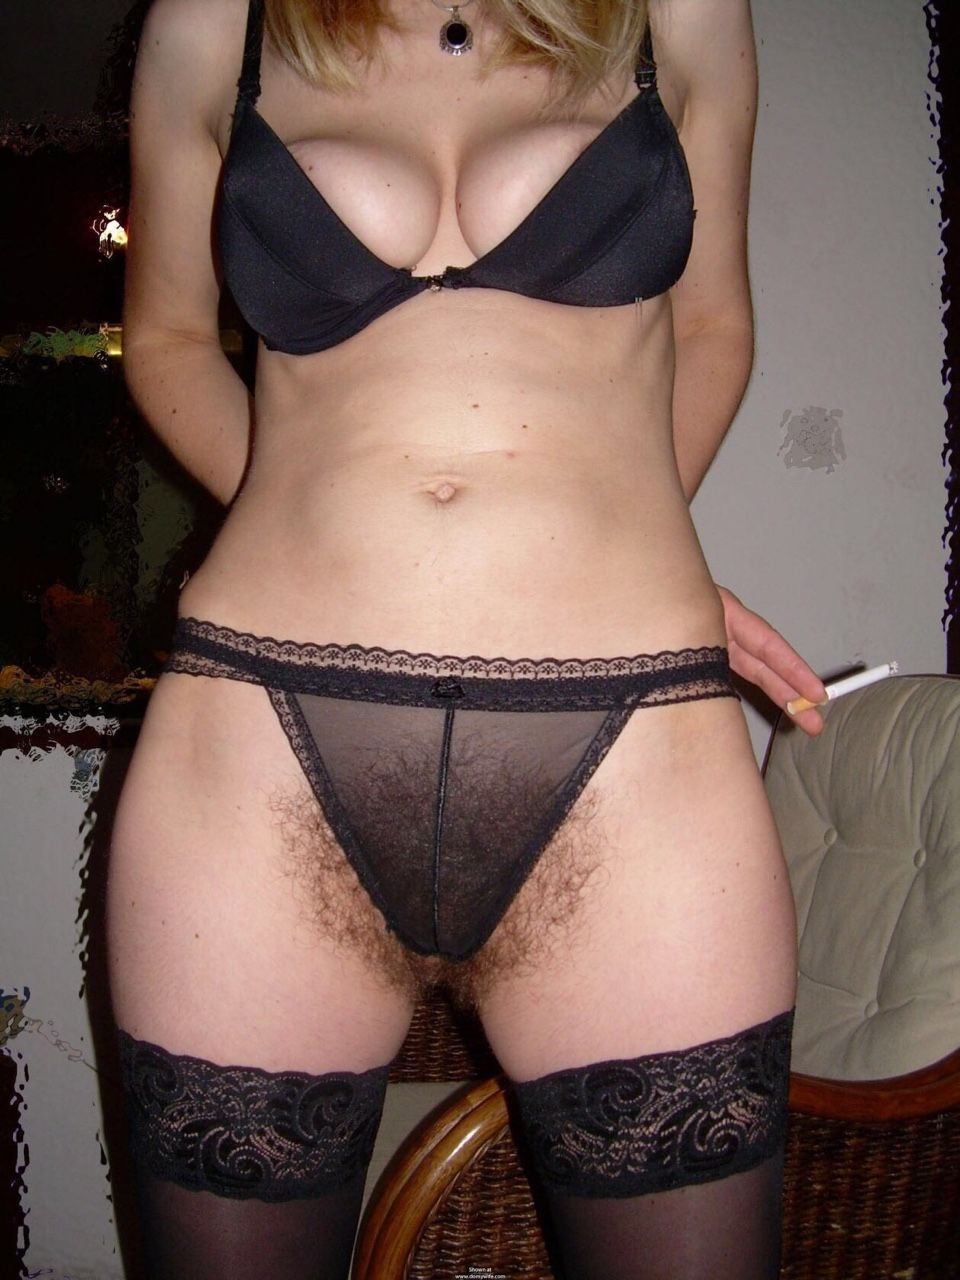 Hairy bush panties